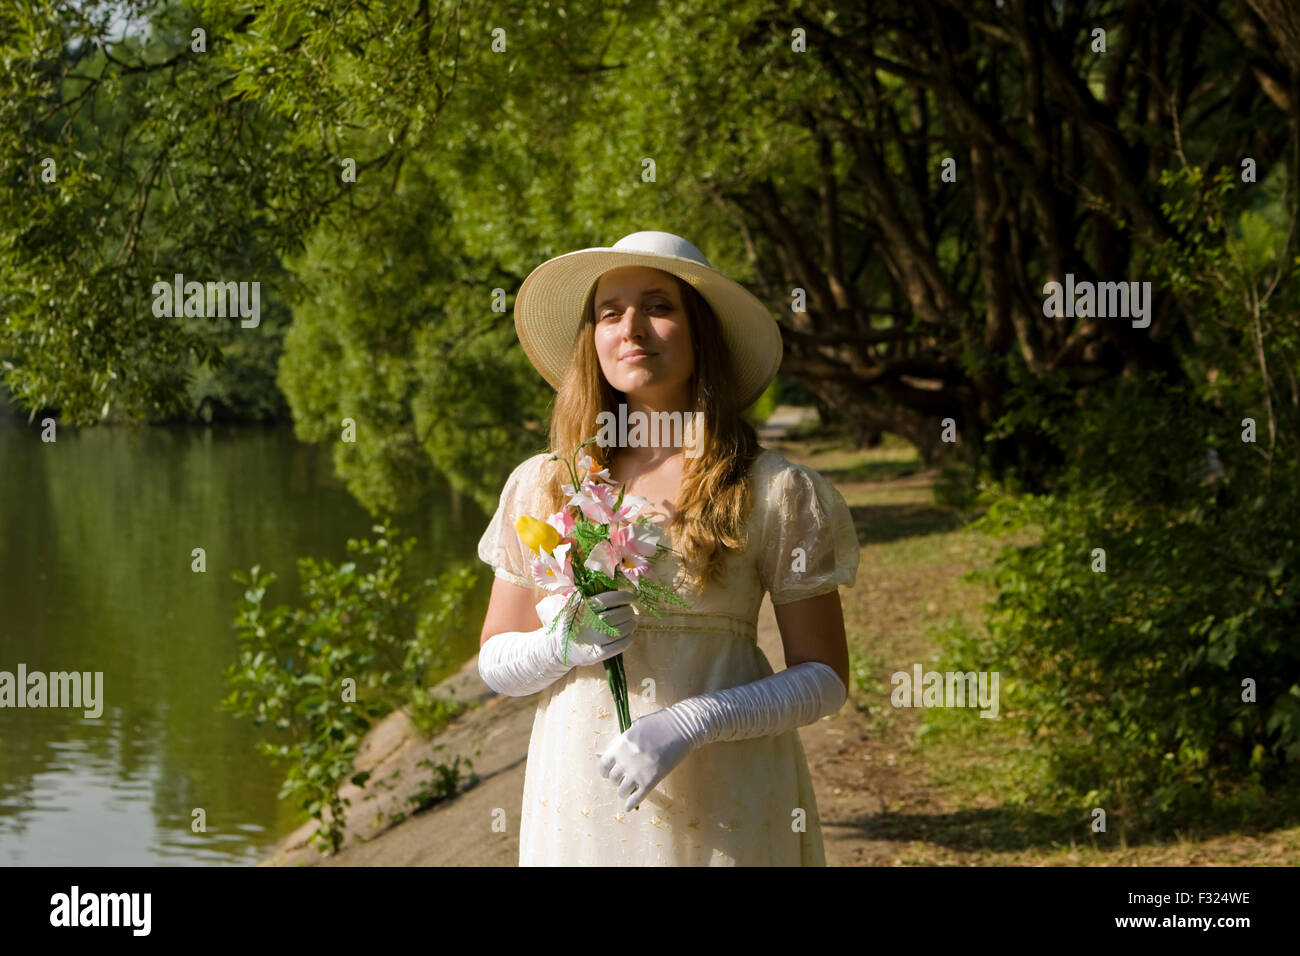 Lady, half body, in white dress with white hat with bouquet of flowers in park. - Stock Image